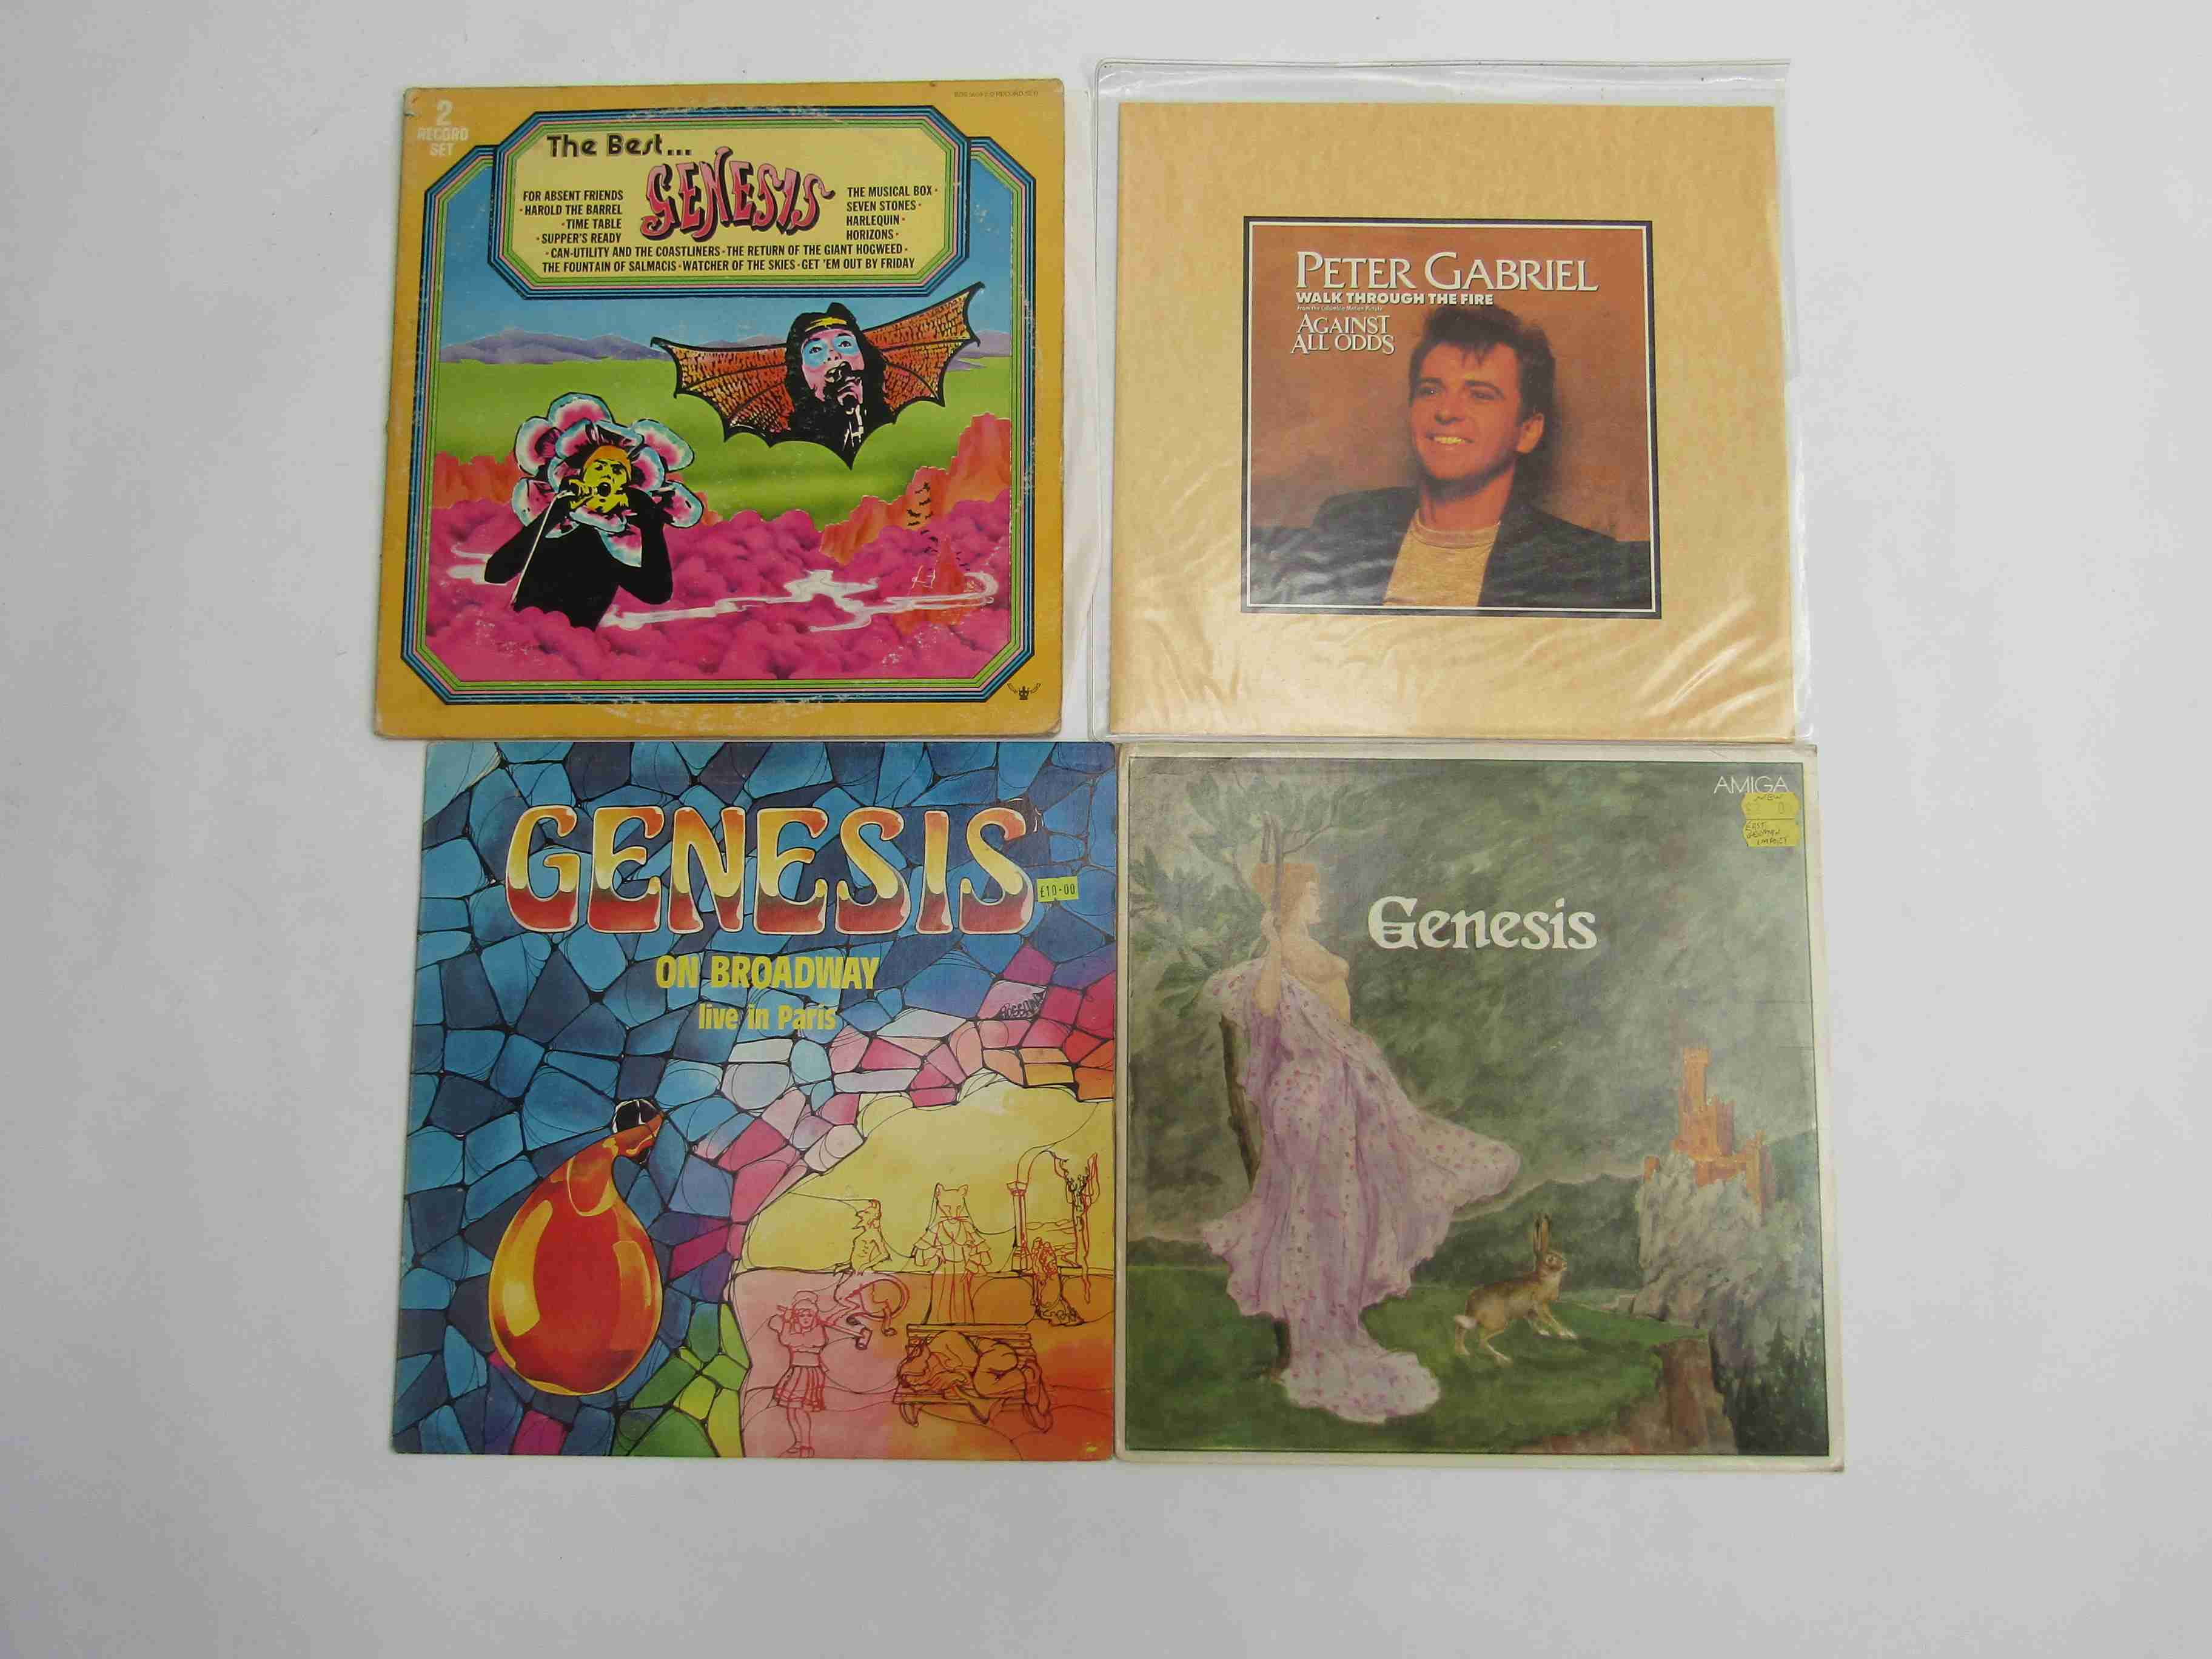 GENESIS: Two unofficial release LP's to include 'Genesis' 8 55 40 and 'On Broadway Live In Paris'